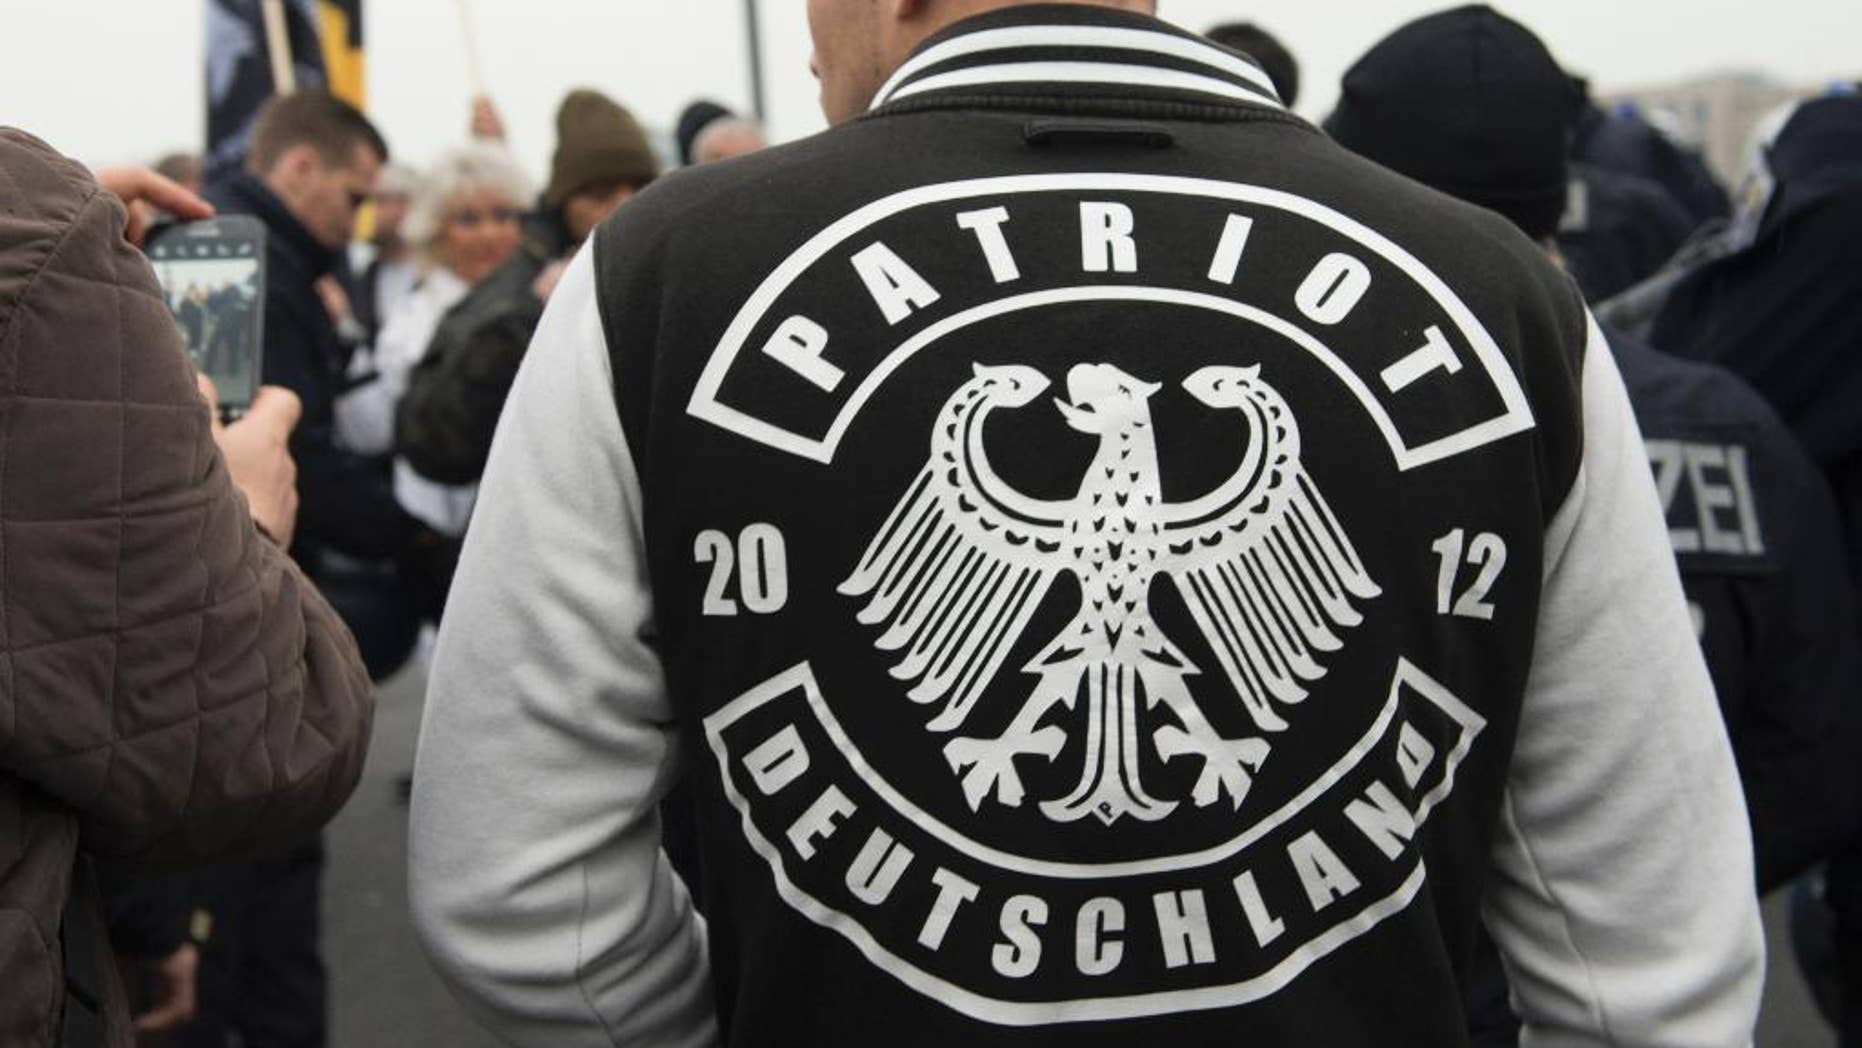 """A demonstrator wears a jacket with the writing """"Patriot Deutschland"""" (lt. Germany Patriot) during the fourth demonstration of the right-wing populist alliance 'Wir fuer Deutschland' in Berlin, Germany, Saturday,  Nov. 5, 2016. (Paul Zinken/dpa via AP)"""